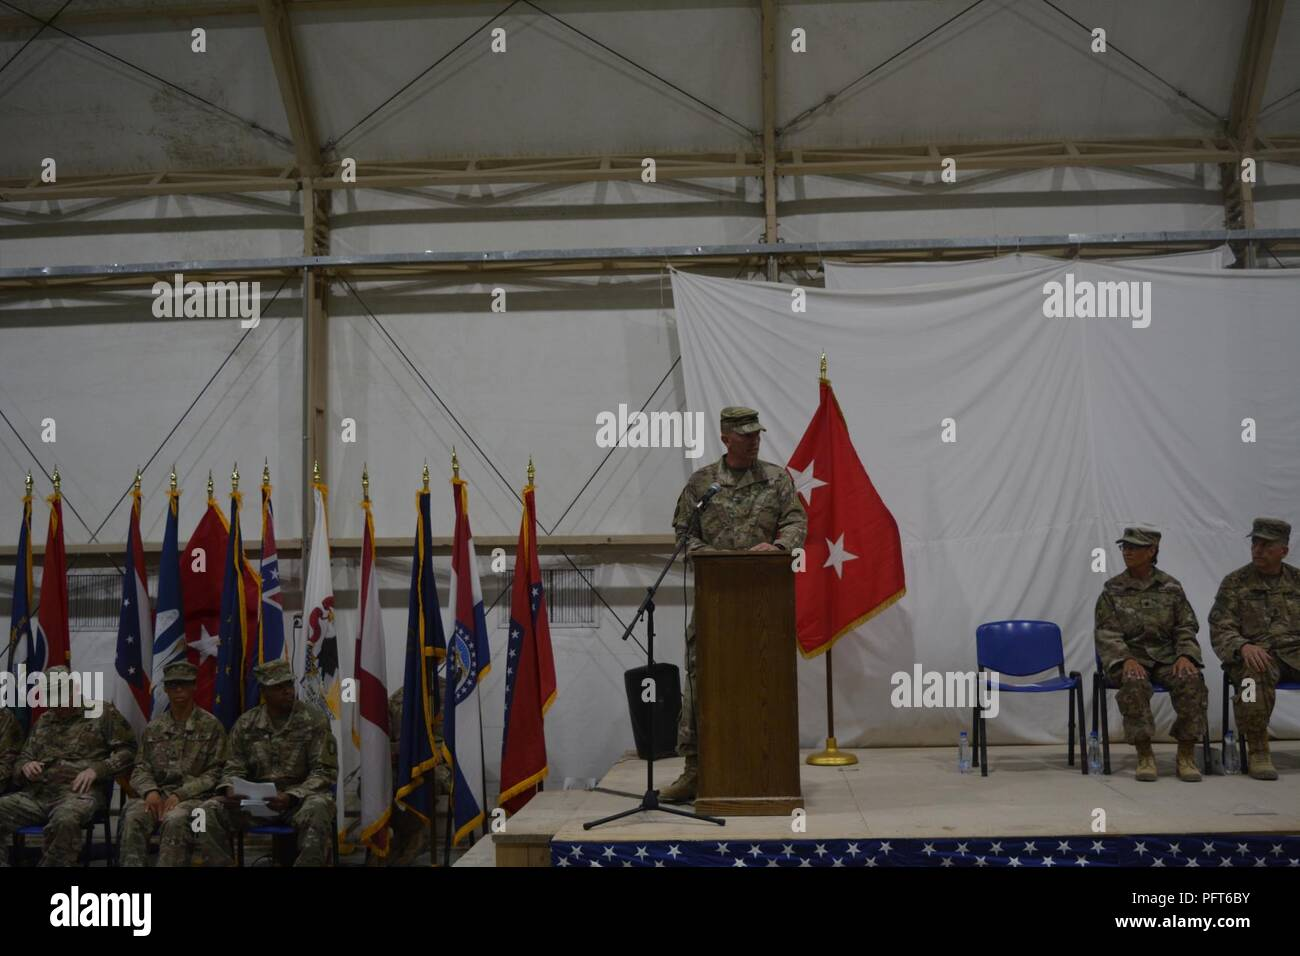 983rd Engineer Battalion High Resolution Stock Photography And Images Alamy